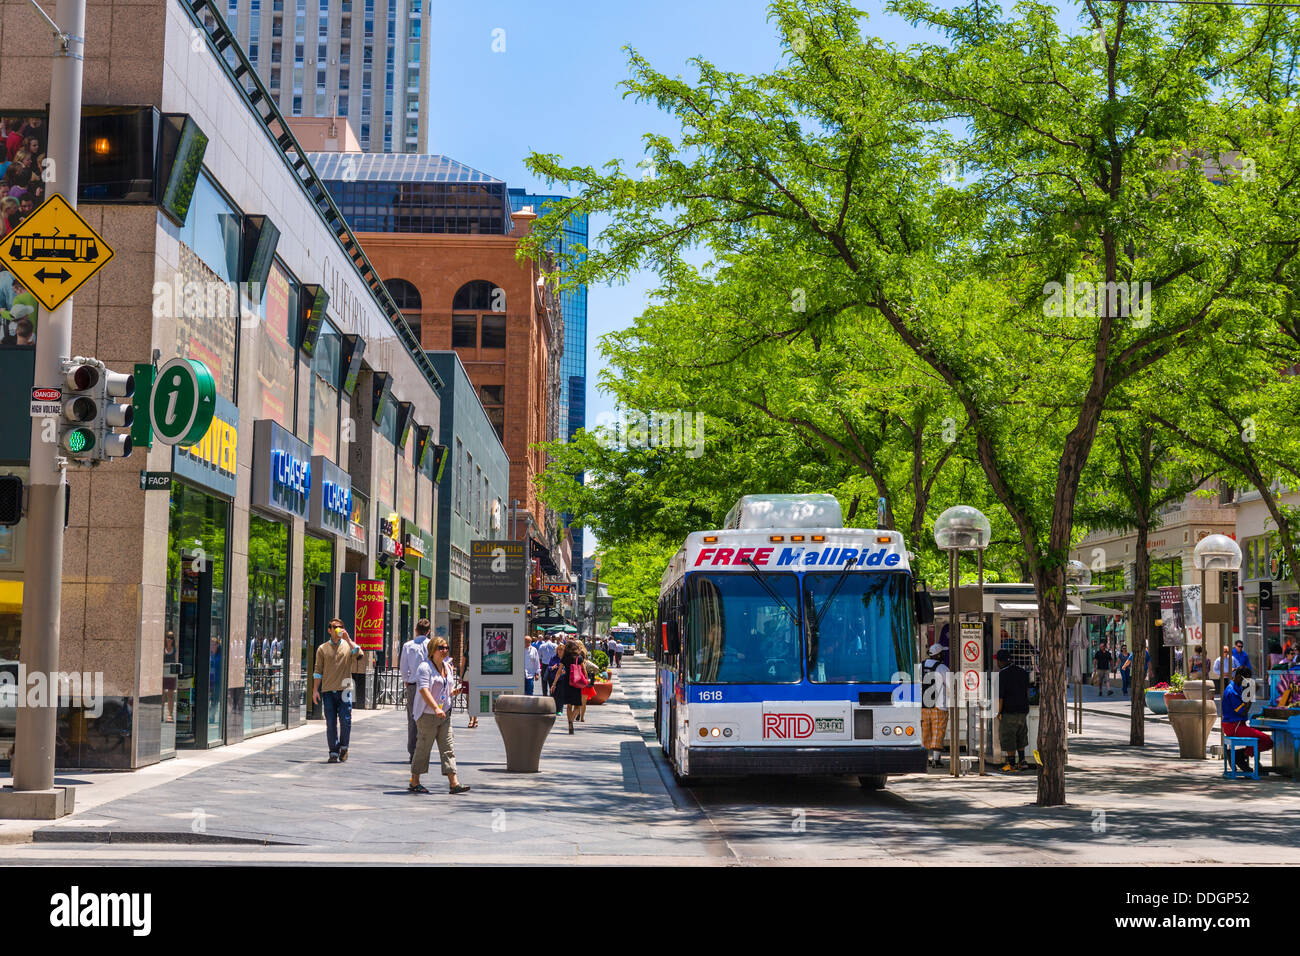 Free Mall Ride shuttle bus on the pedestrianised 16th Street Mall in downtown Denver, Colorado, USA - Stock Image